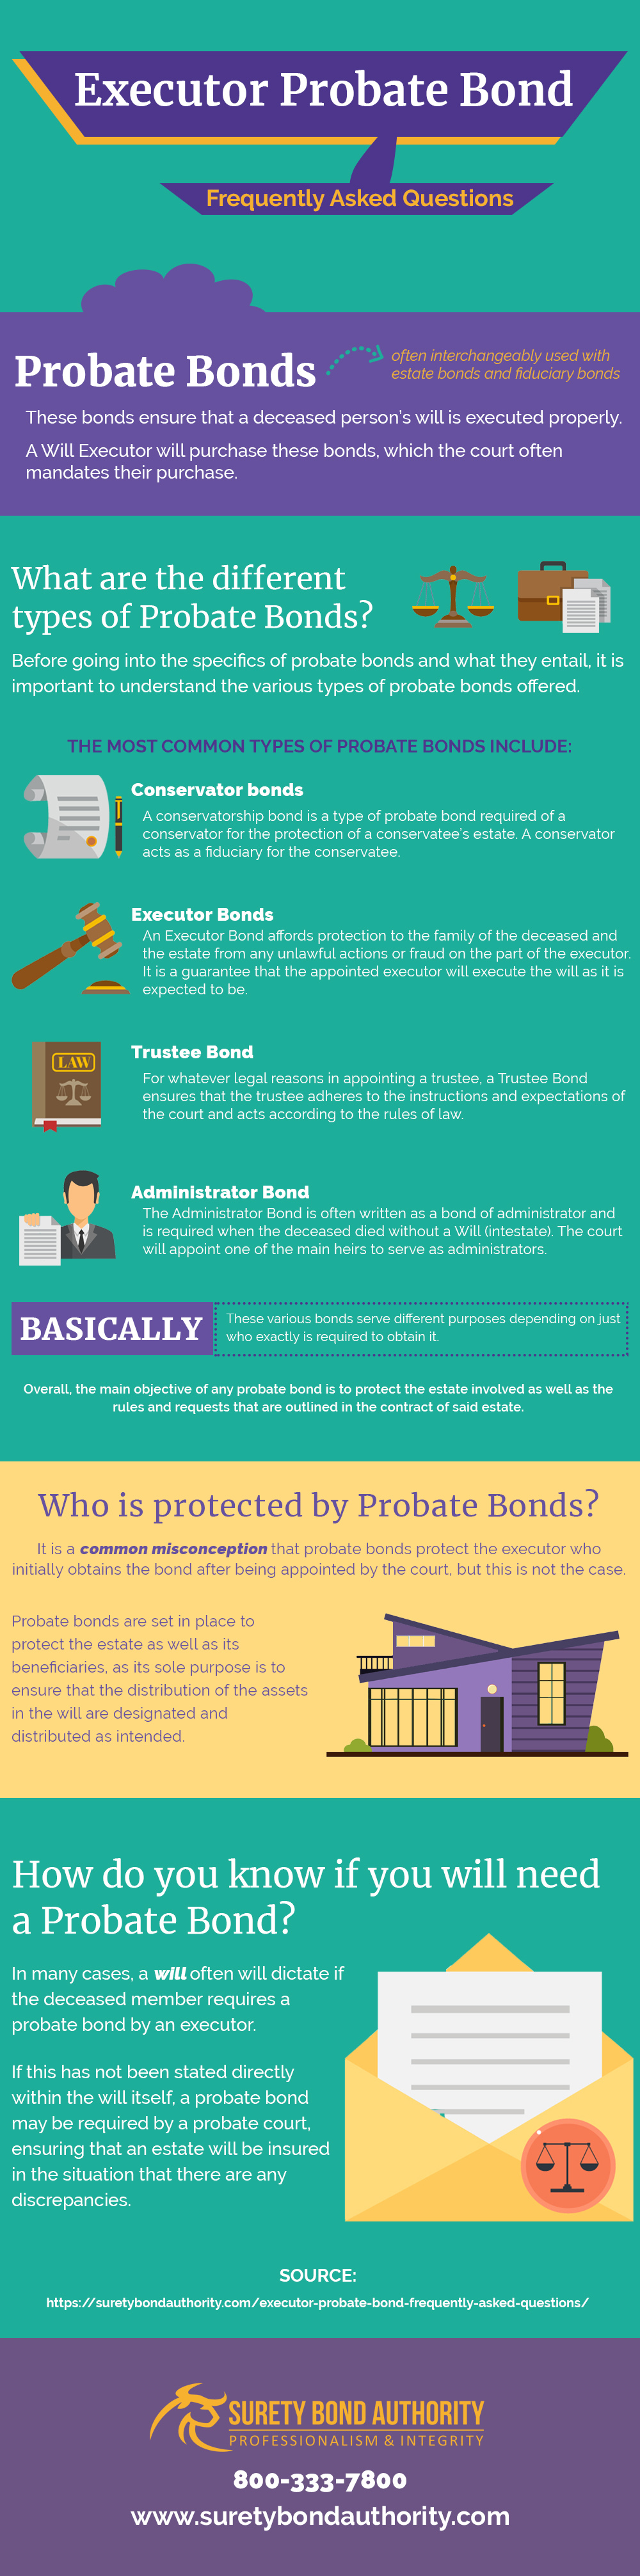 Executor Probate Bond FAQ Infographic